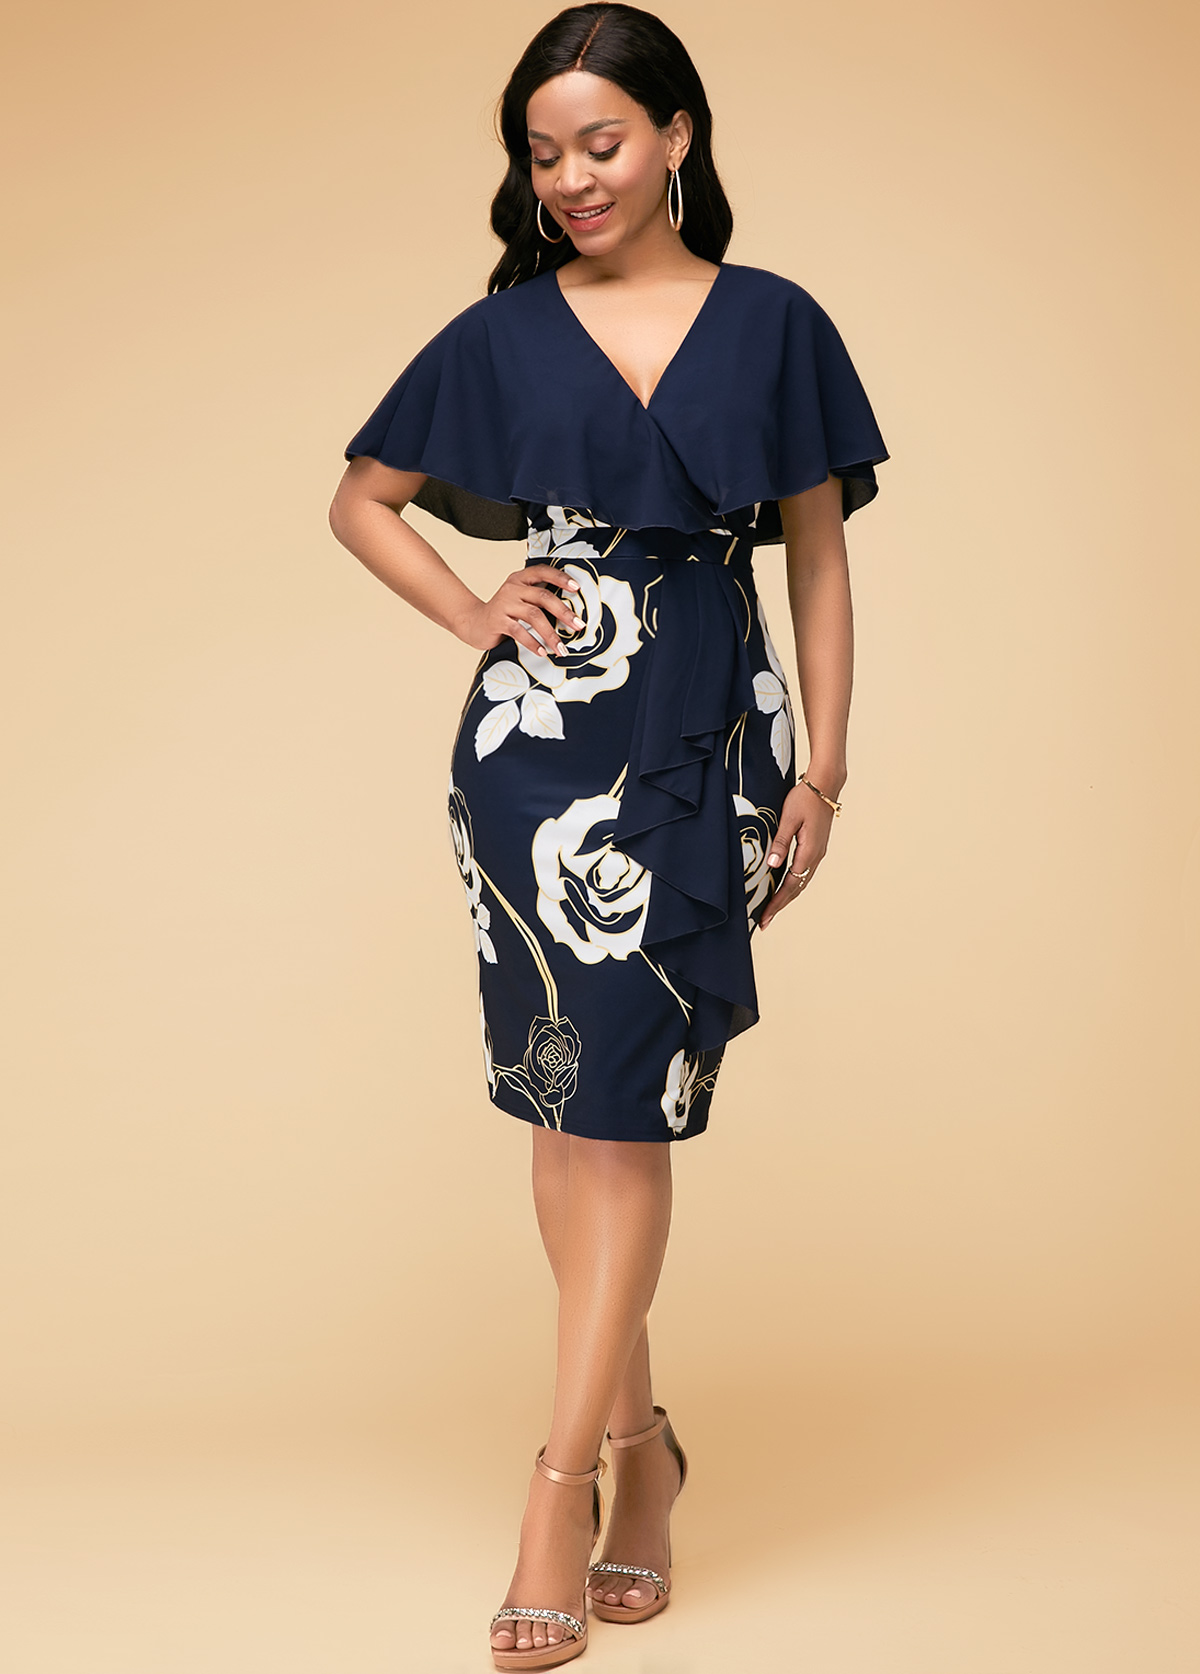 Flower Print Half Sleeve Navy Blue Dress